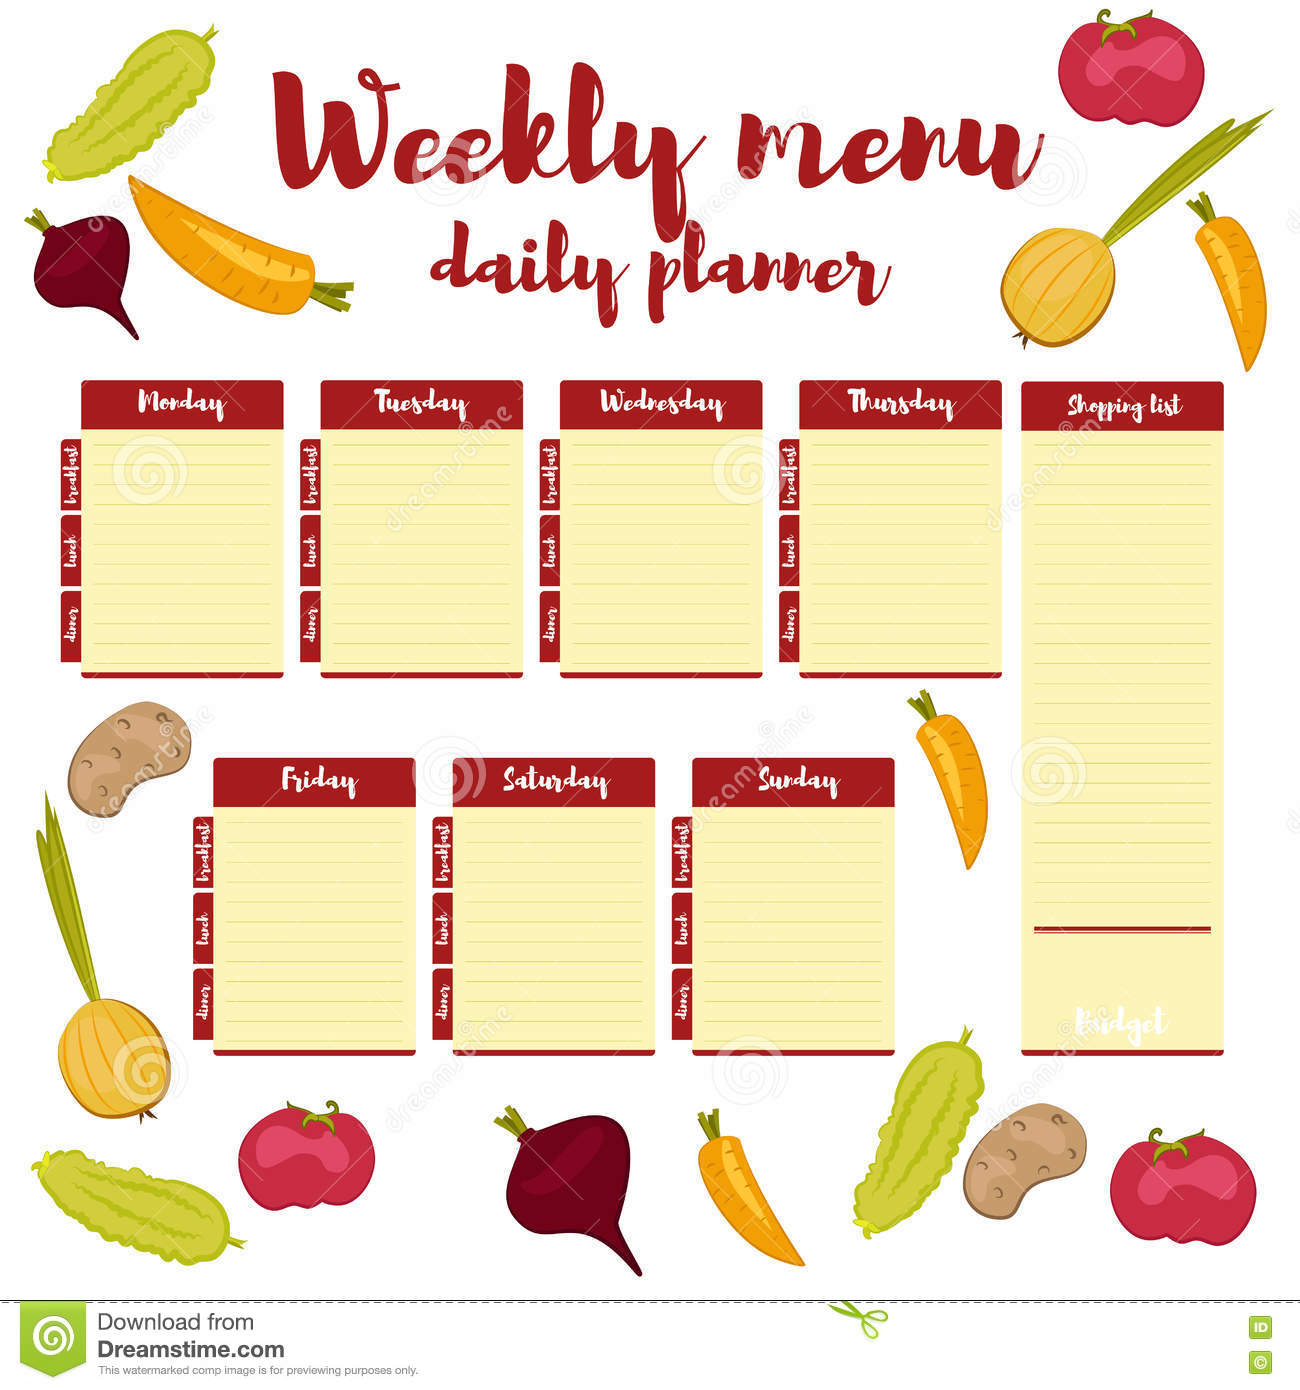 weekly menu daily red planner stock vector illustration of lunch